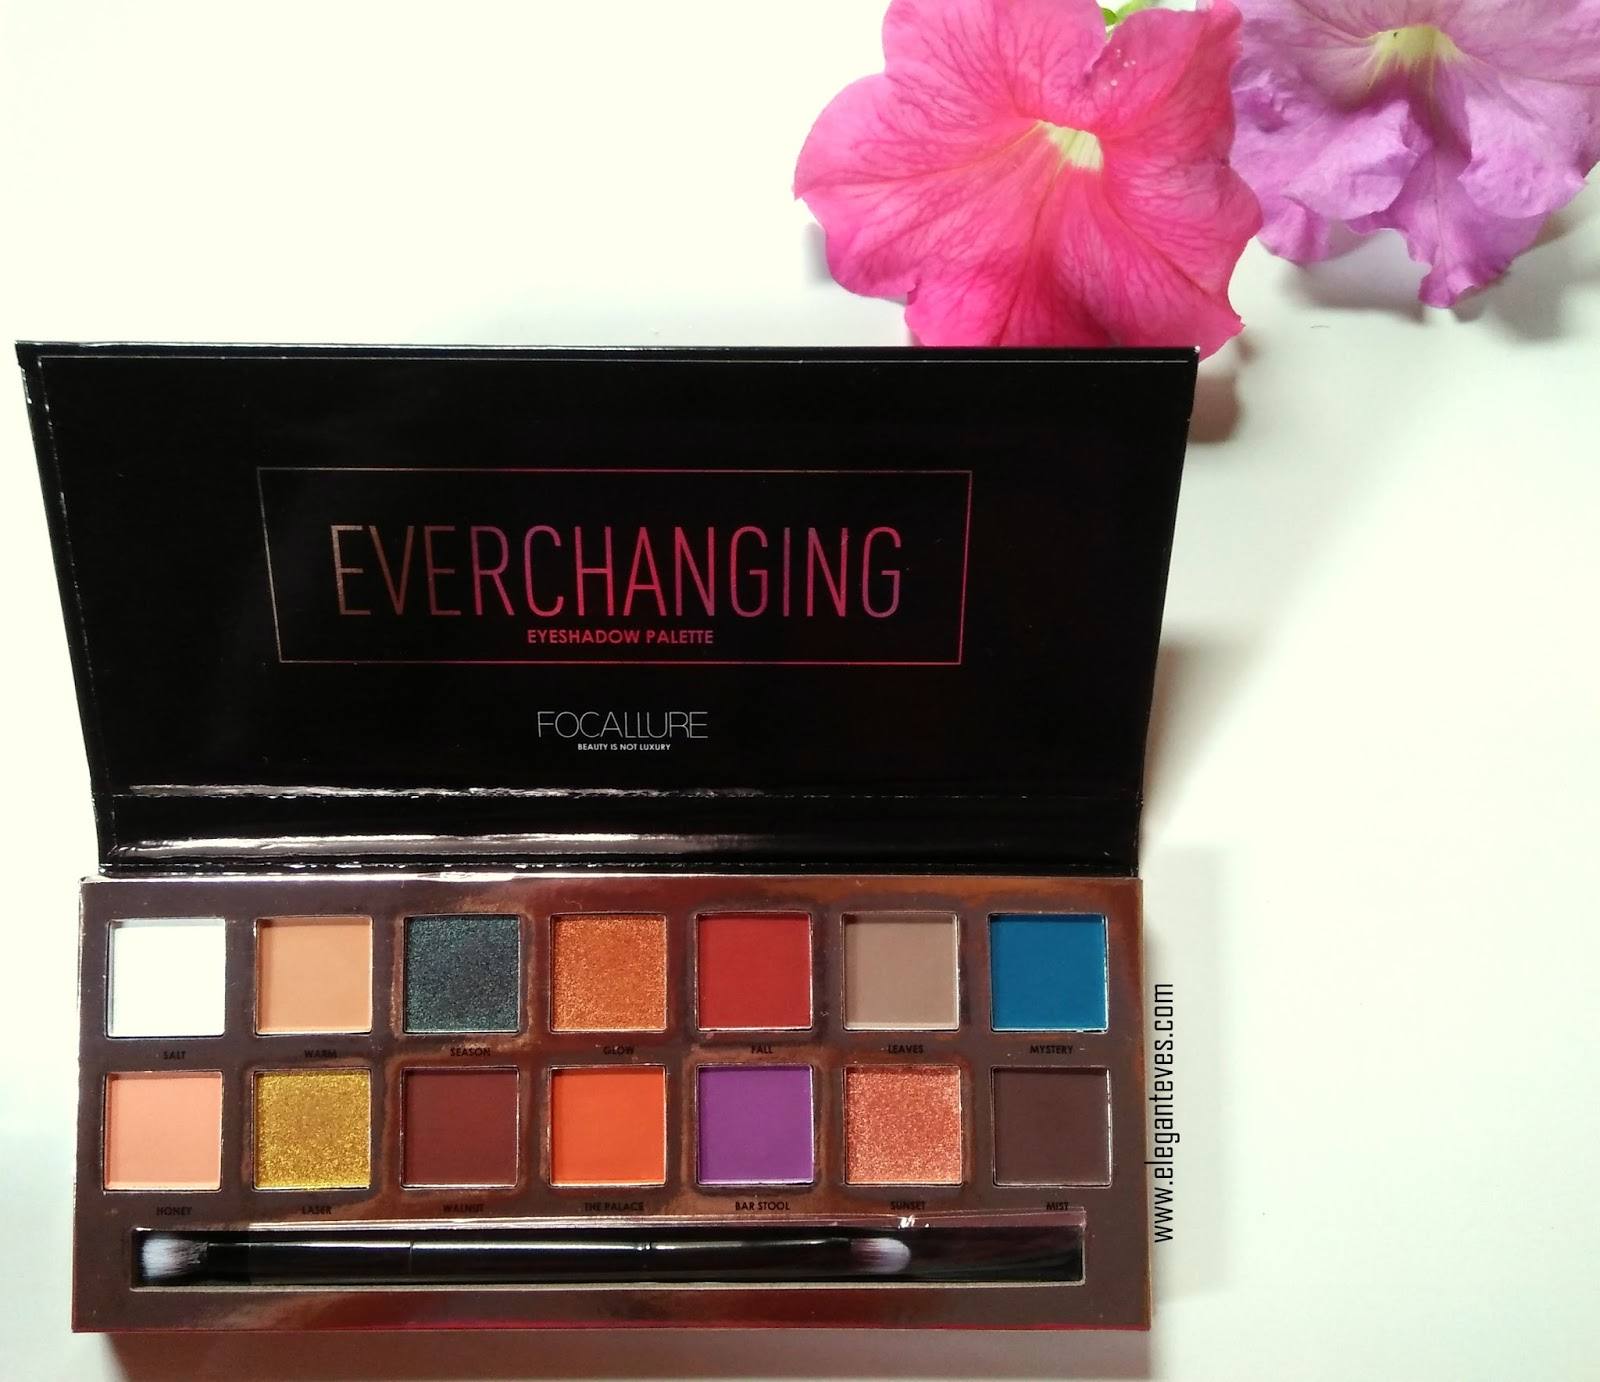 Focallure Everchanging Eyeshadow Palette Review Swatches Elegant Eves